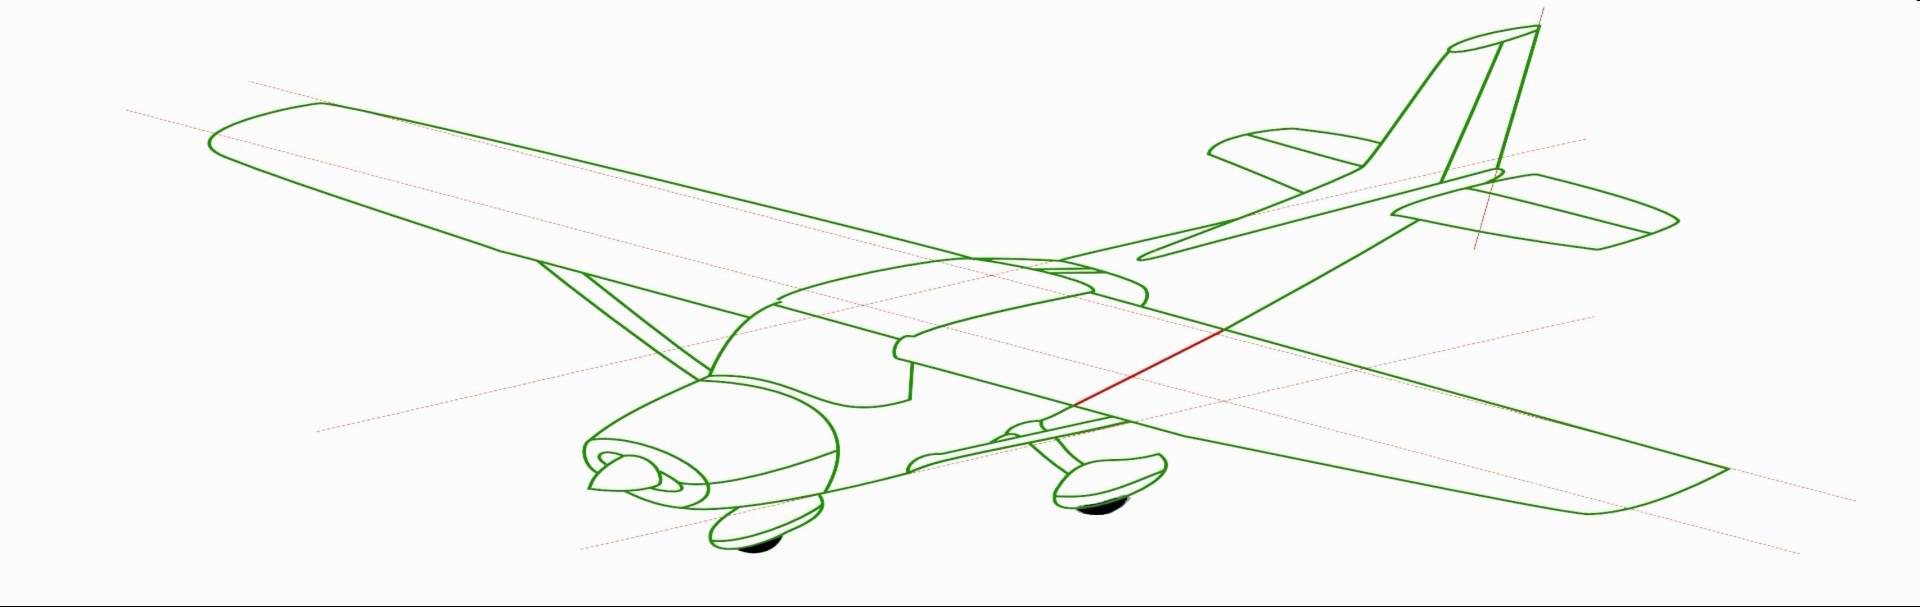 Cessna 172 drawing at getdrawings free for personal use cessna